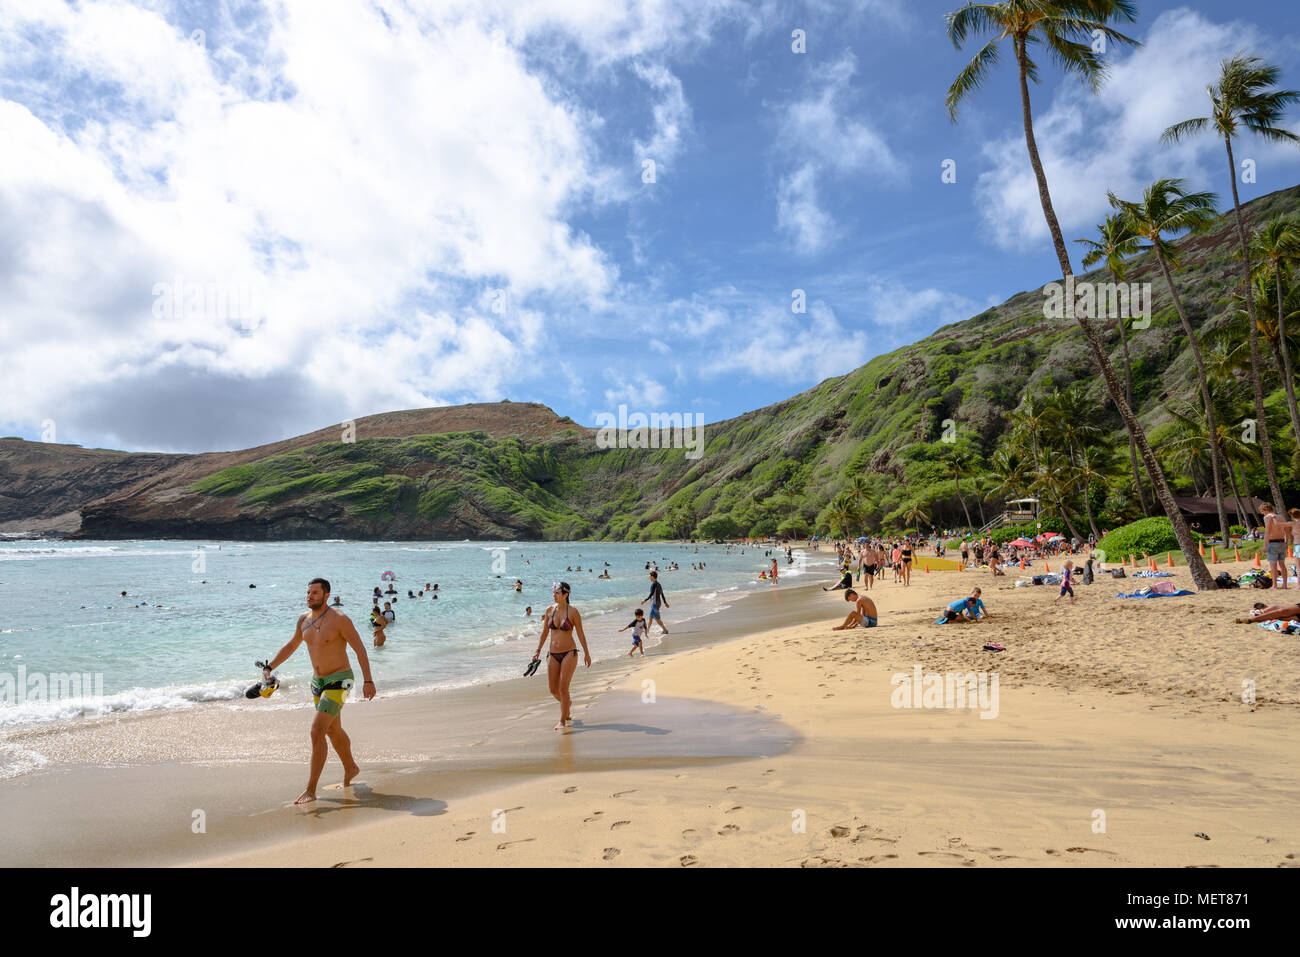 Tourists on the beach at Hanauma Bay, Honolulu, Hawaii Stock Photo